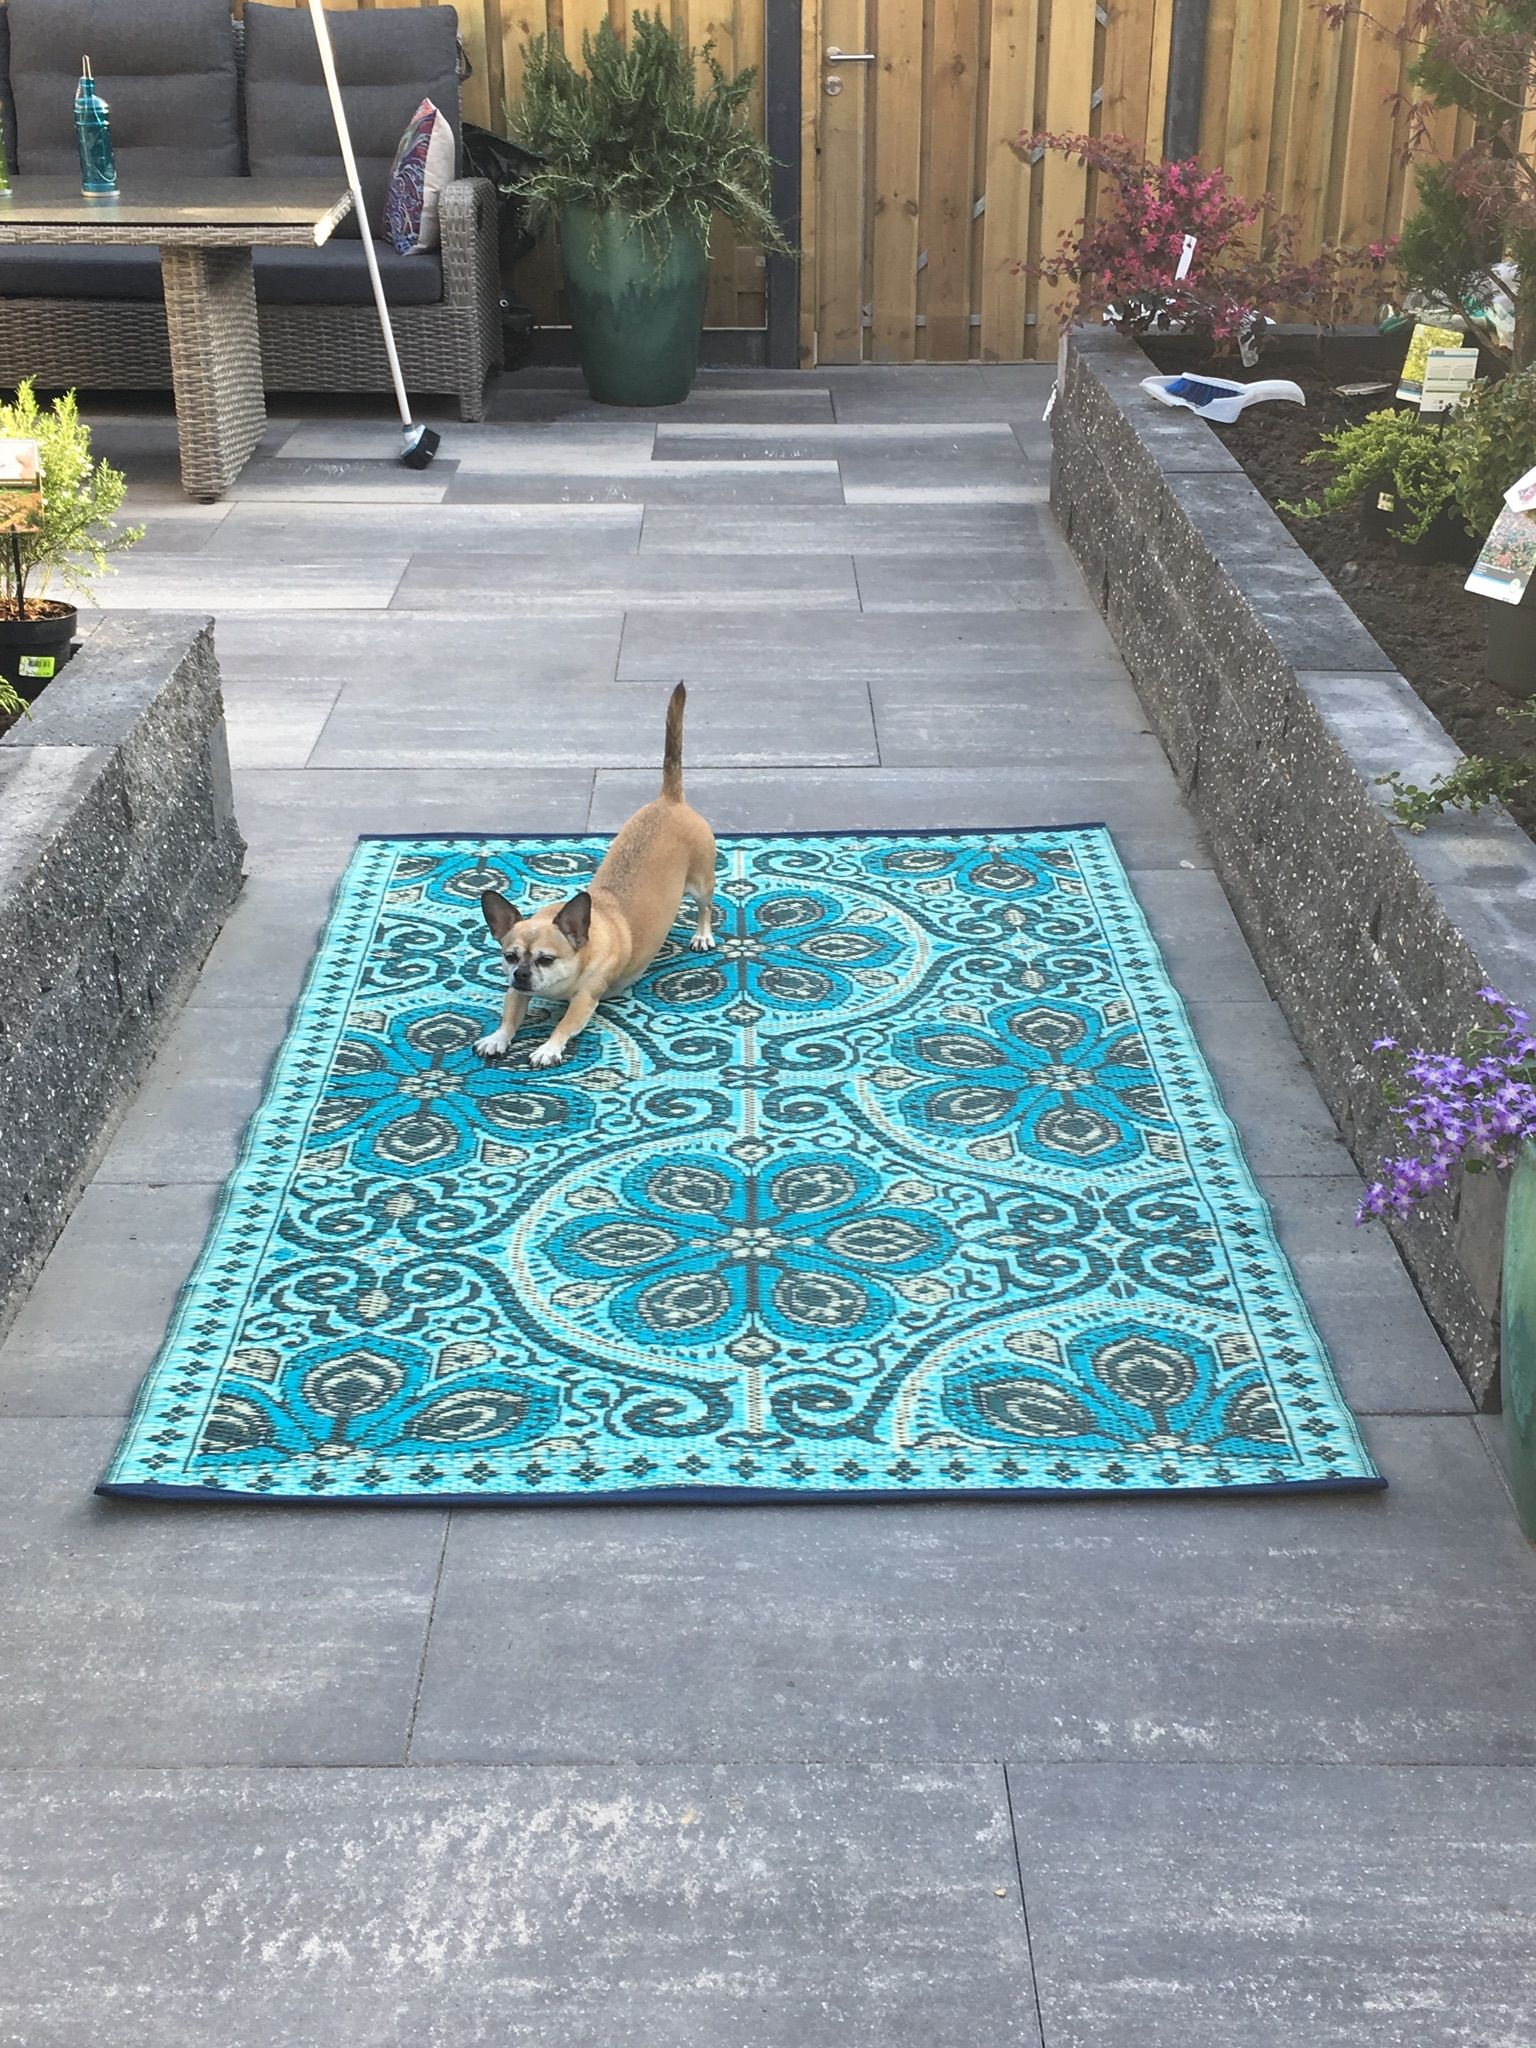 Buitenkleed Plastic Bohemian Outdoor Rug In Blue And Turquoise Colors For Making The